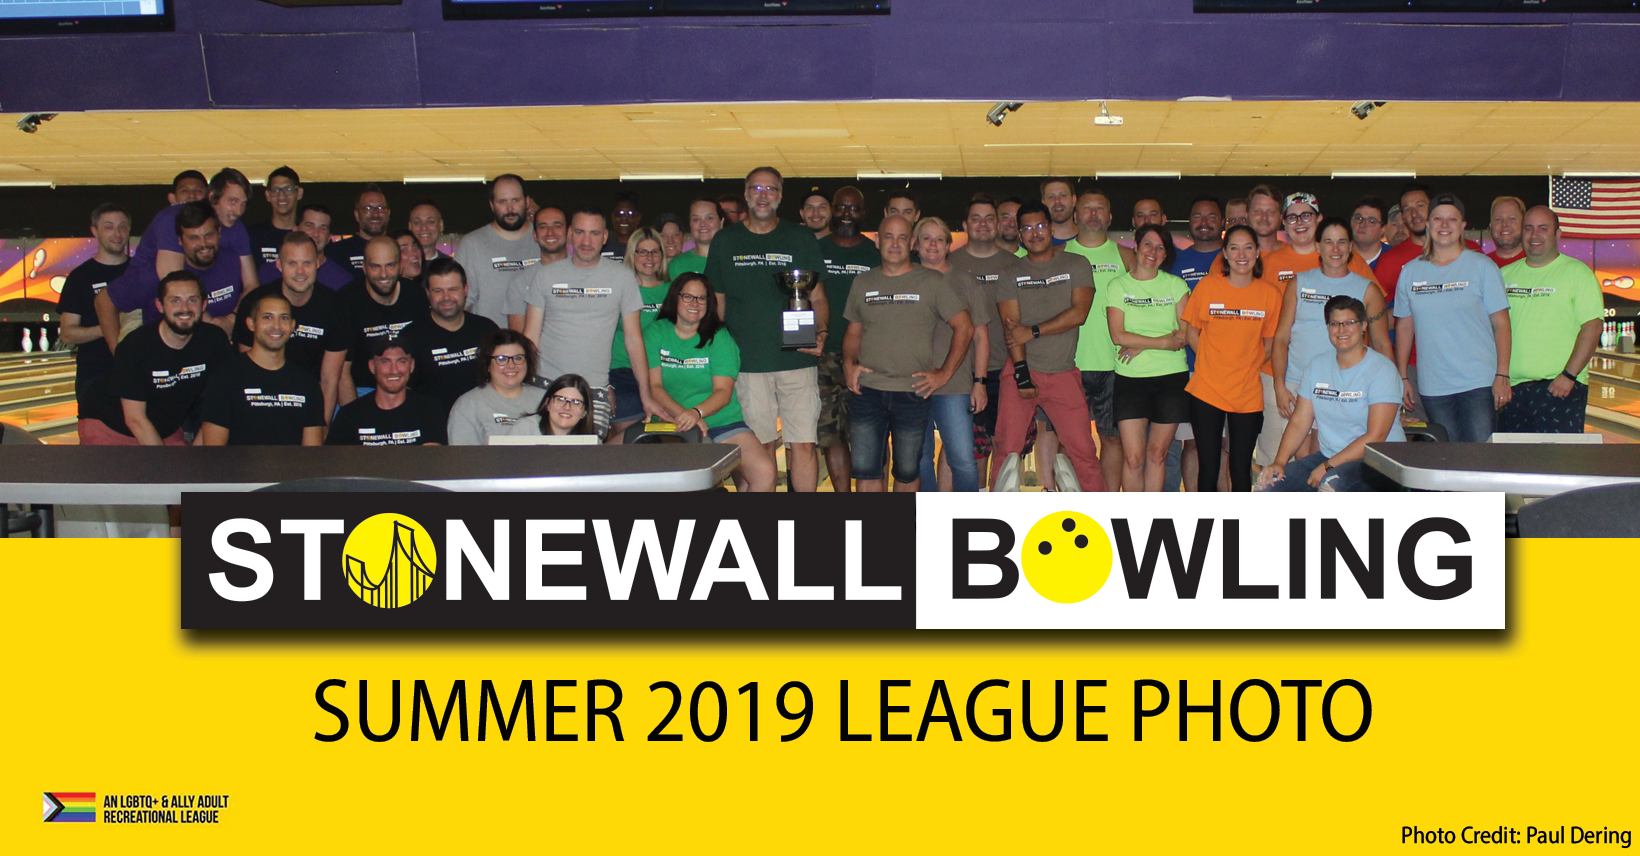 Stonewall Bowling League Photo Summer 2019